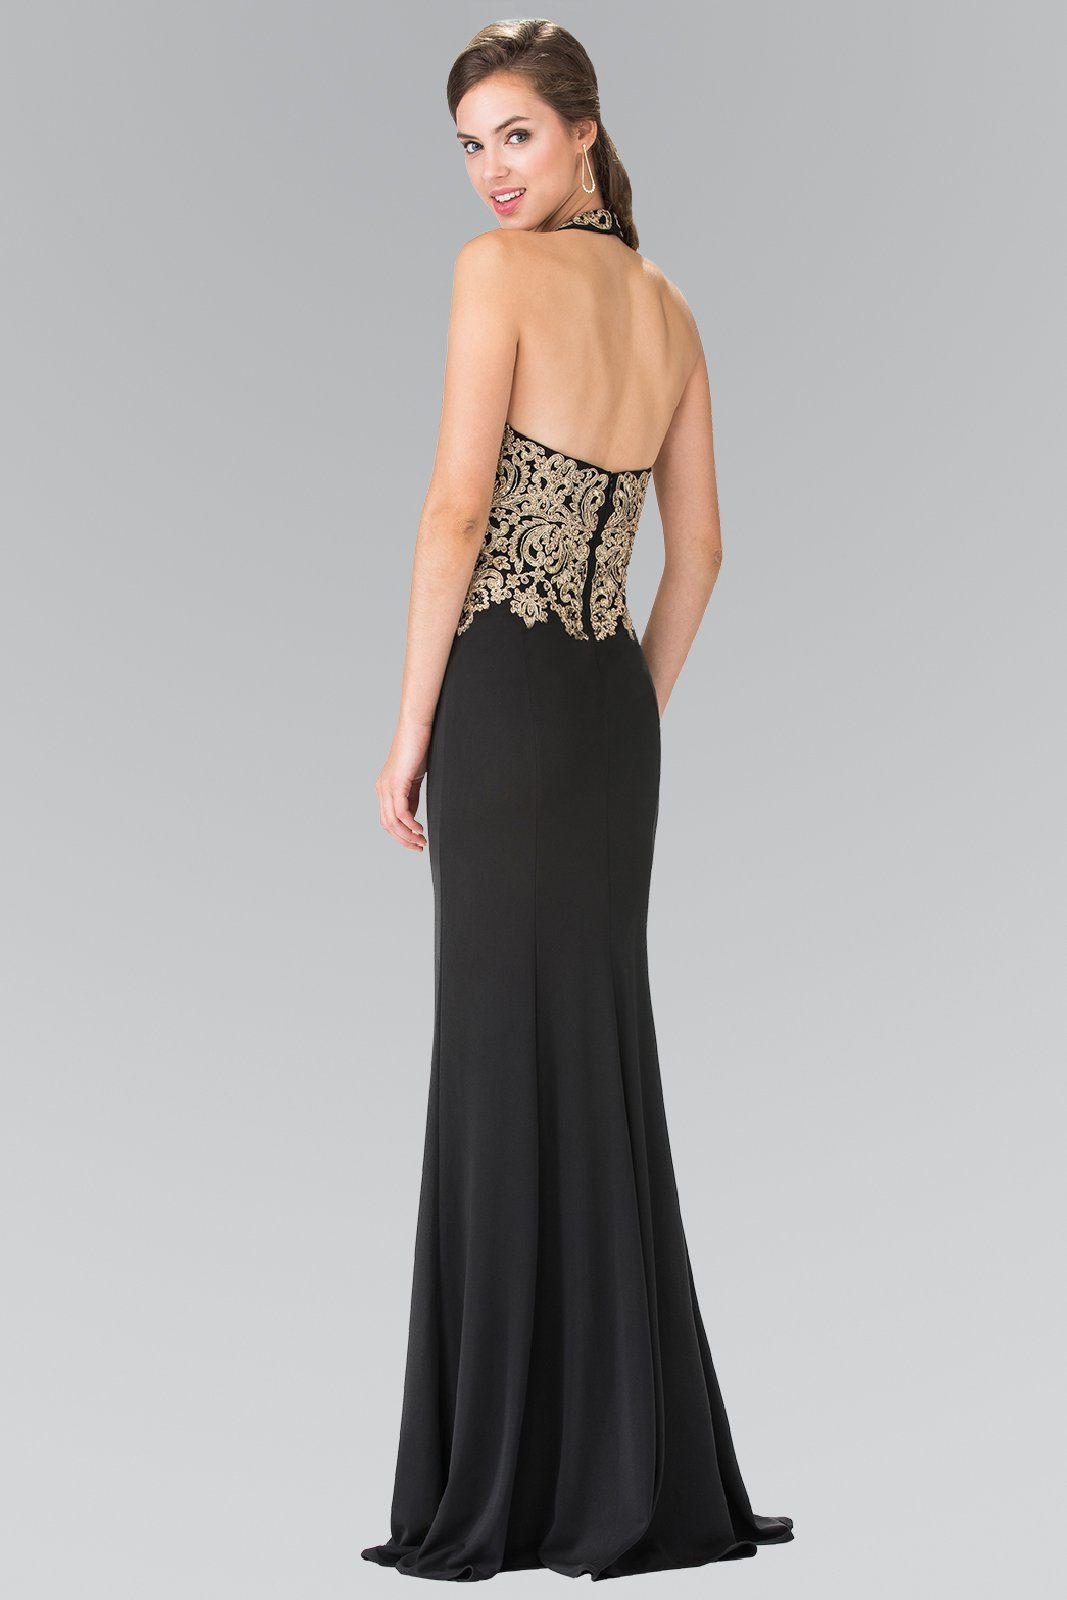 Black and gold prom dress gls 2231 – Simply Fab Dress